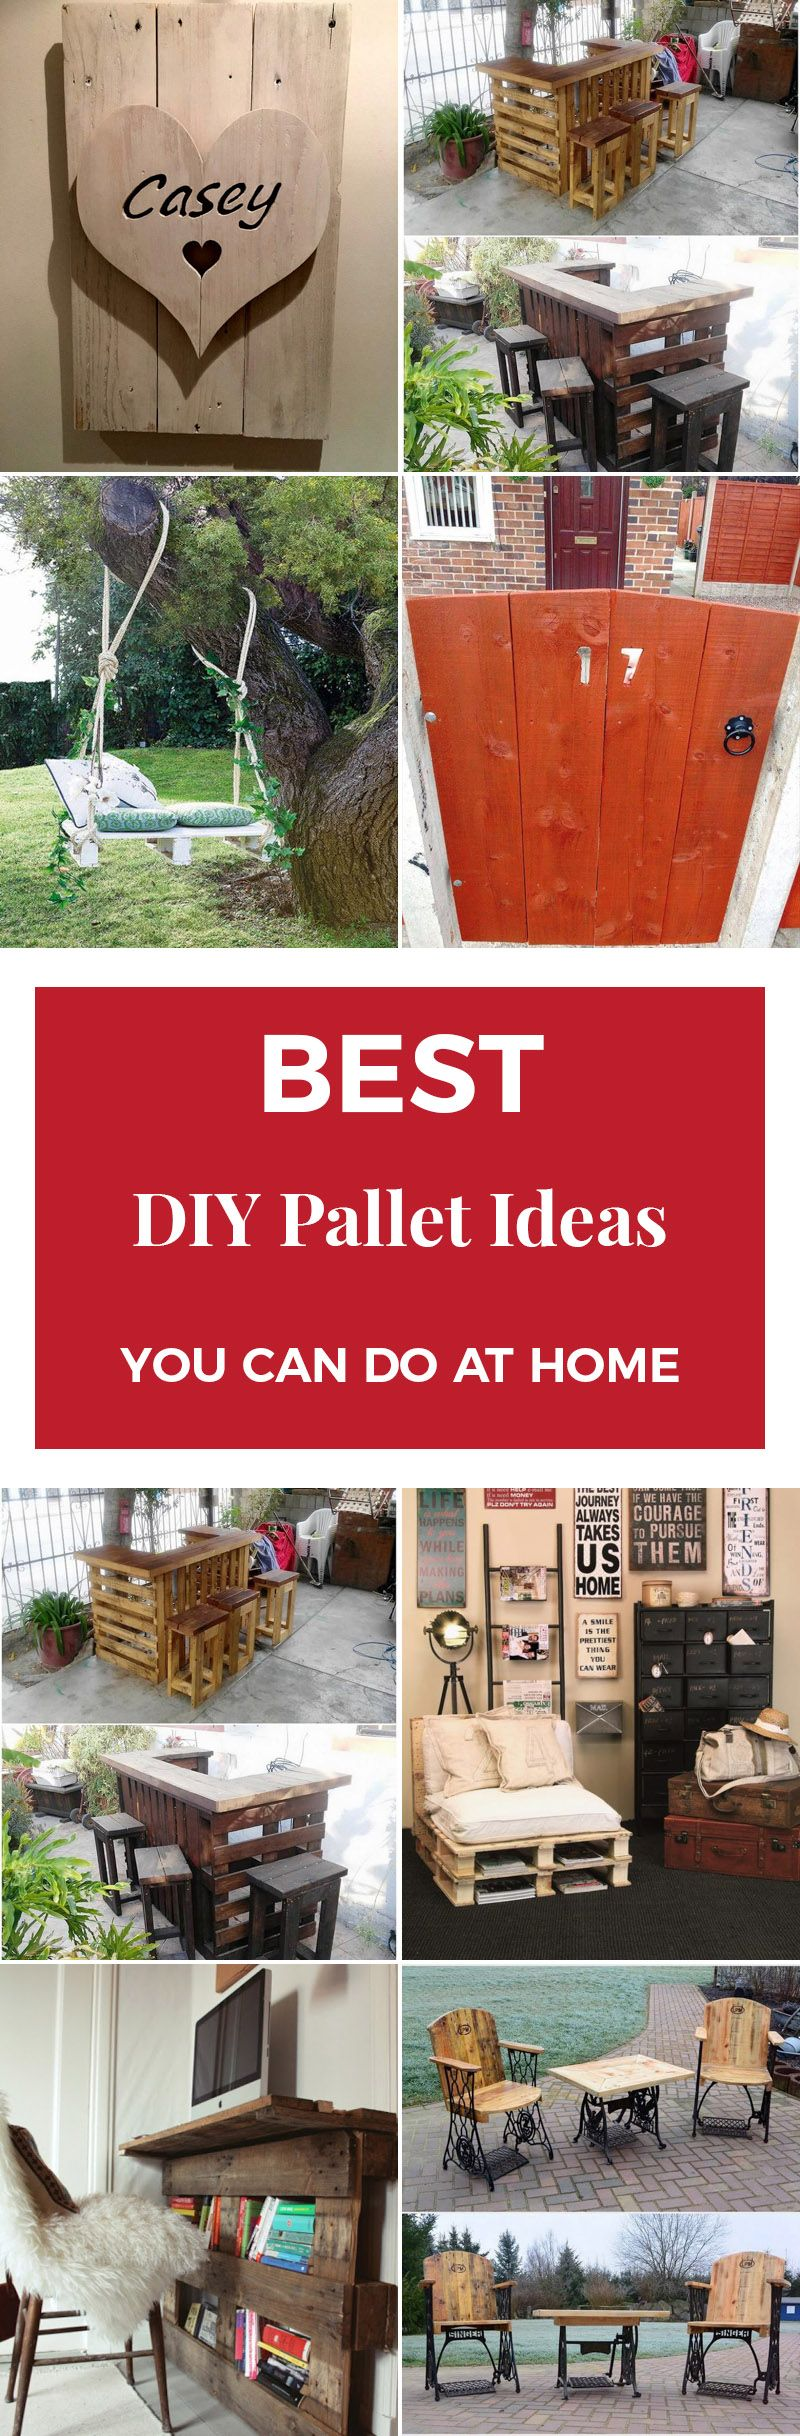 20 Best Diy Pallet Ideas You Can Do At Home